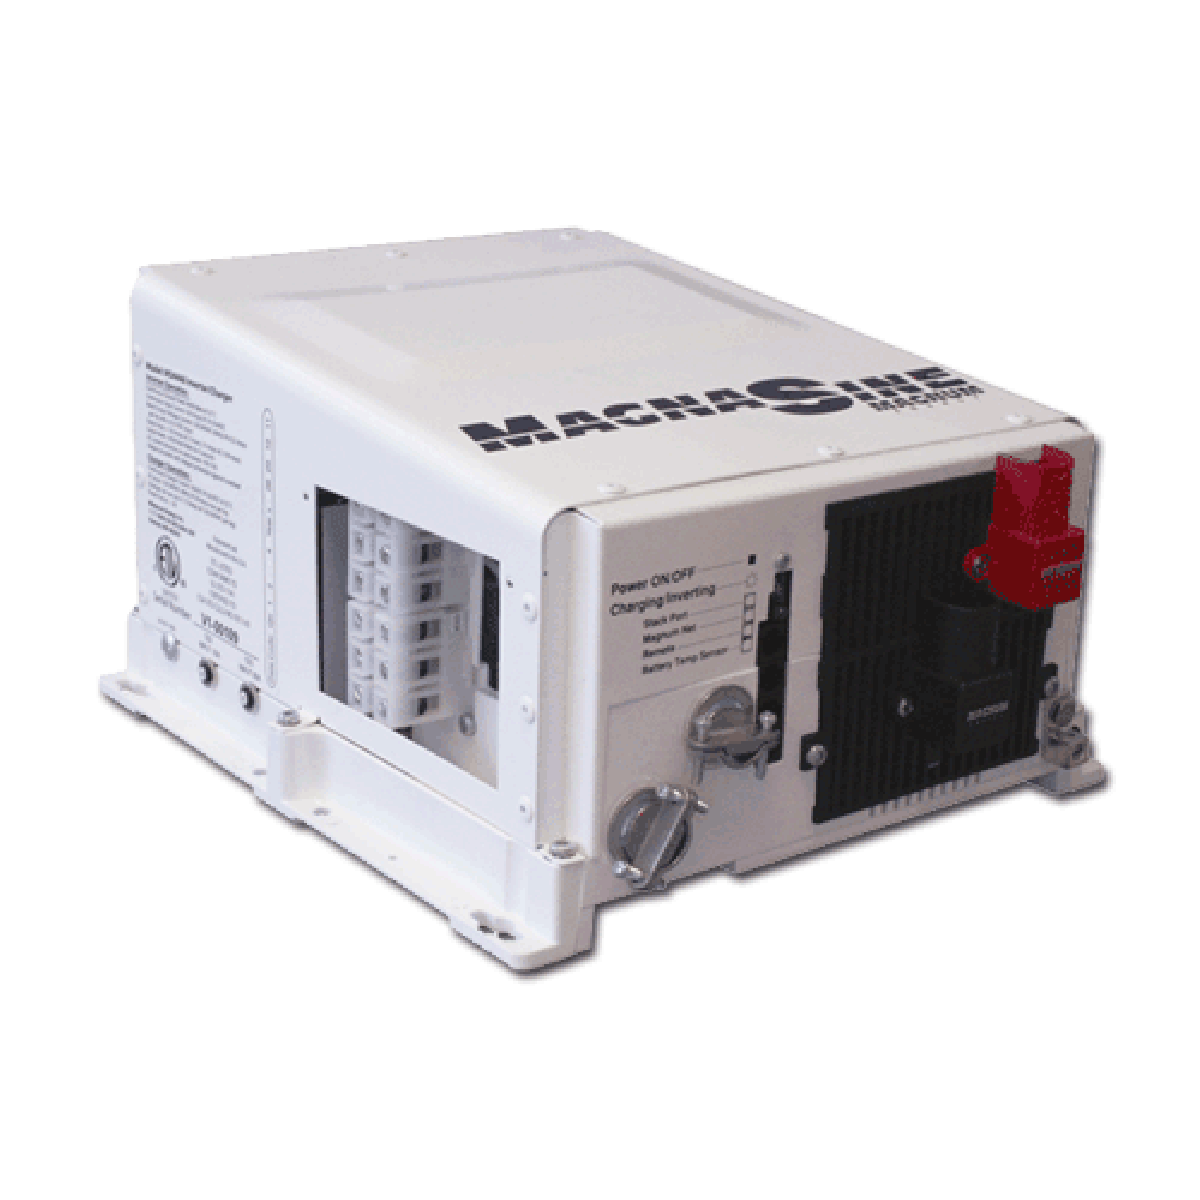 Magnum MS4348PE 4300w Battery Inverter/Charger on